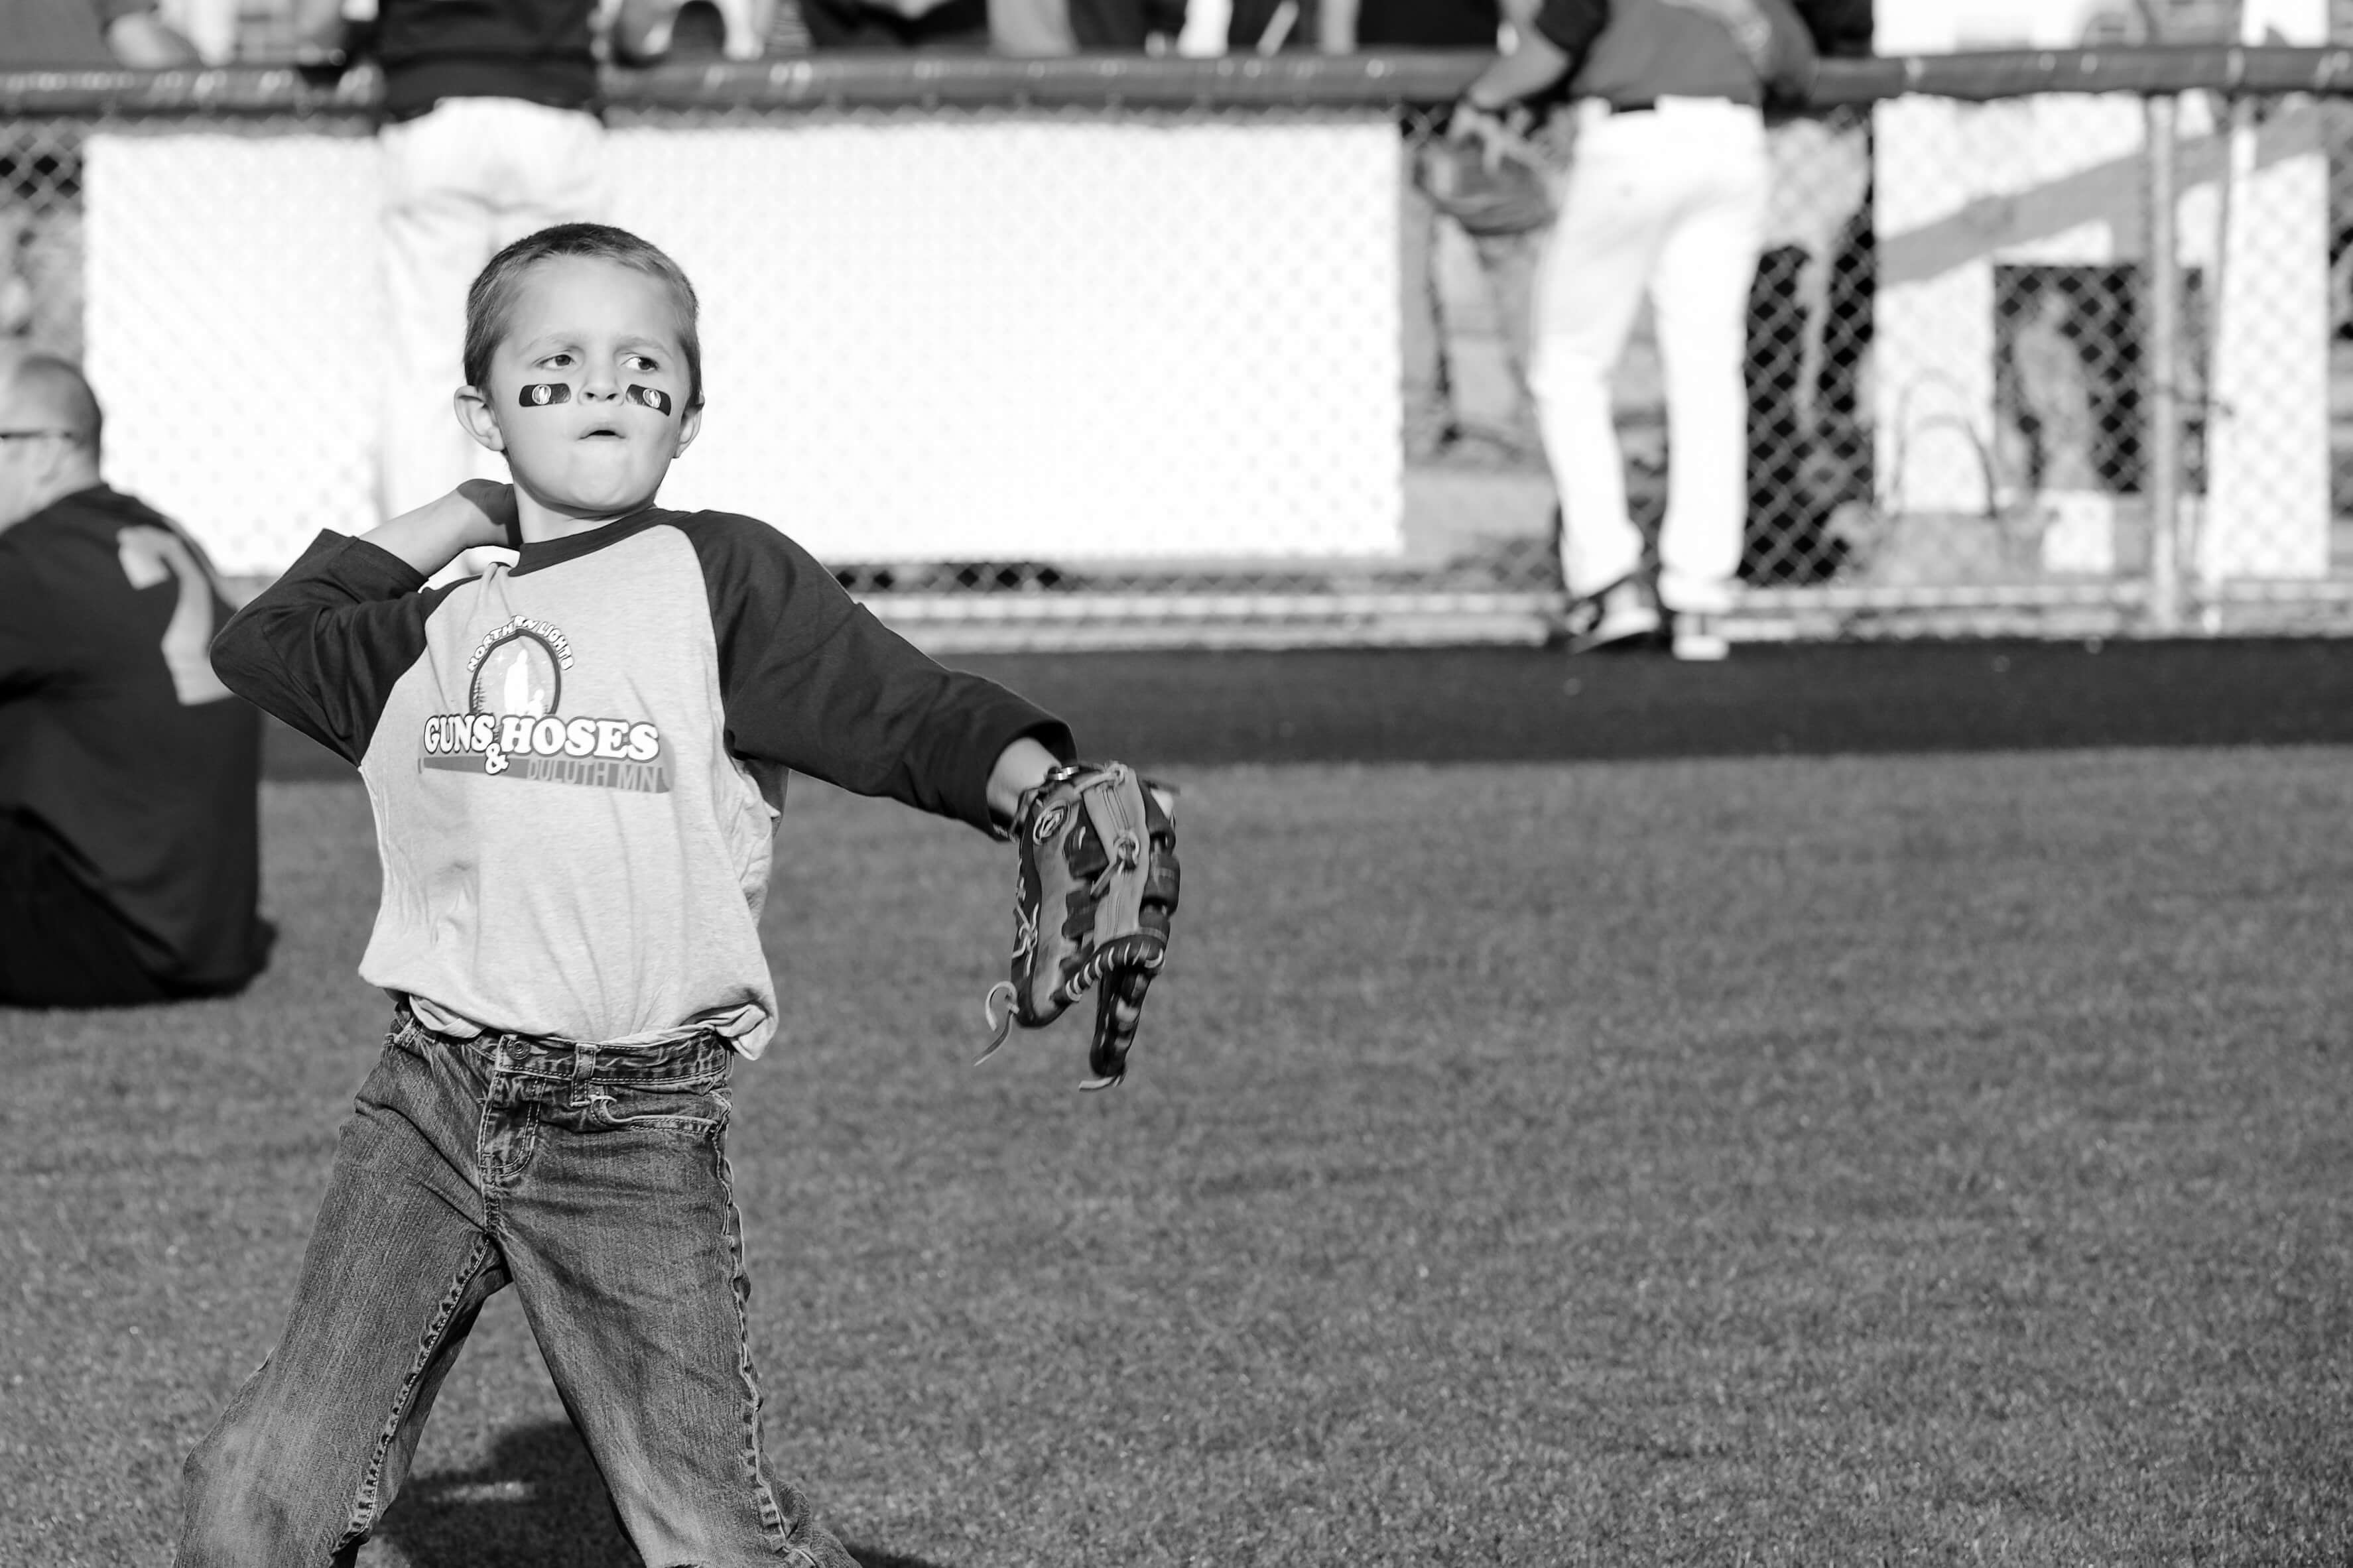 Northern Lights Foundation - Guns & Hoses kid throwing baseball